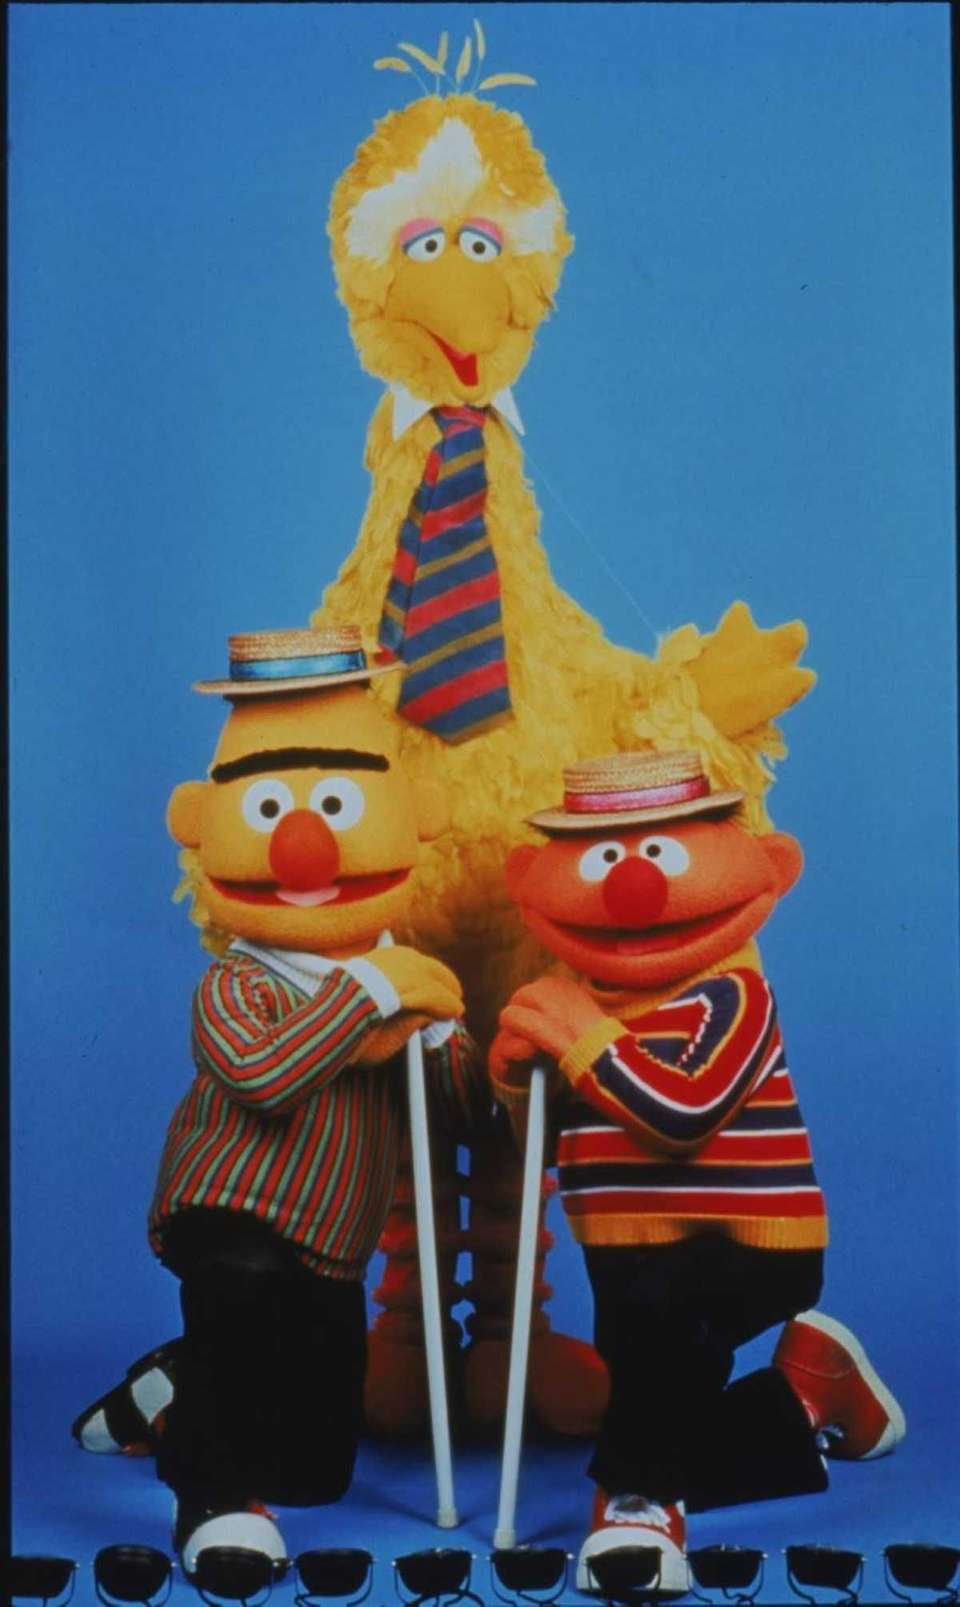 Bert and Ernie with Big Bird